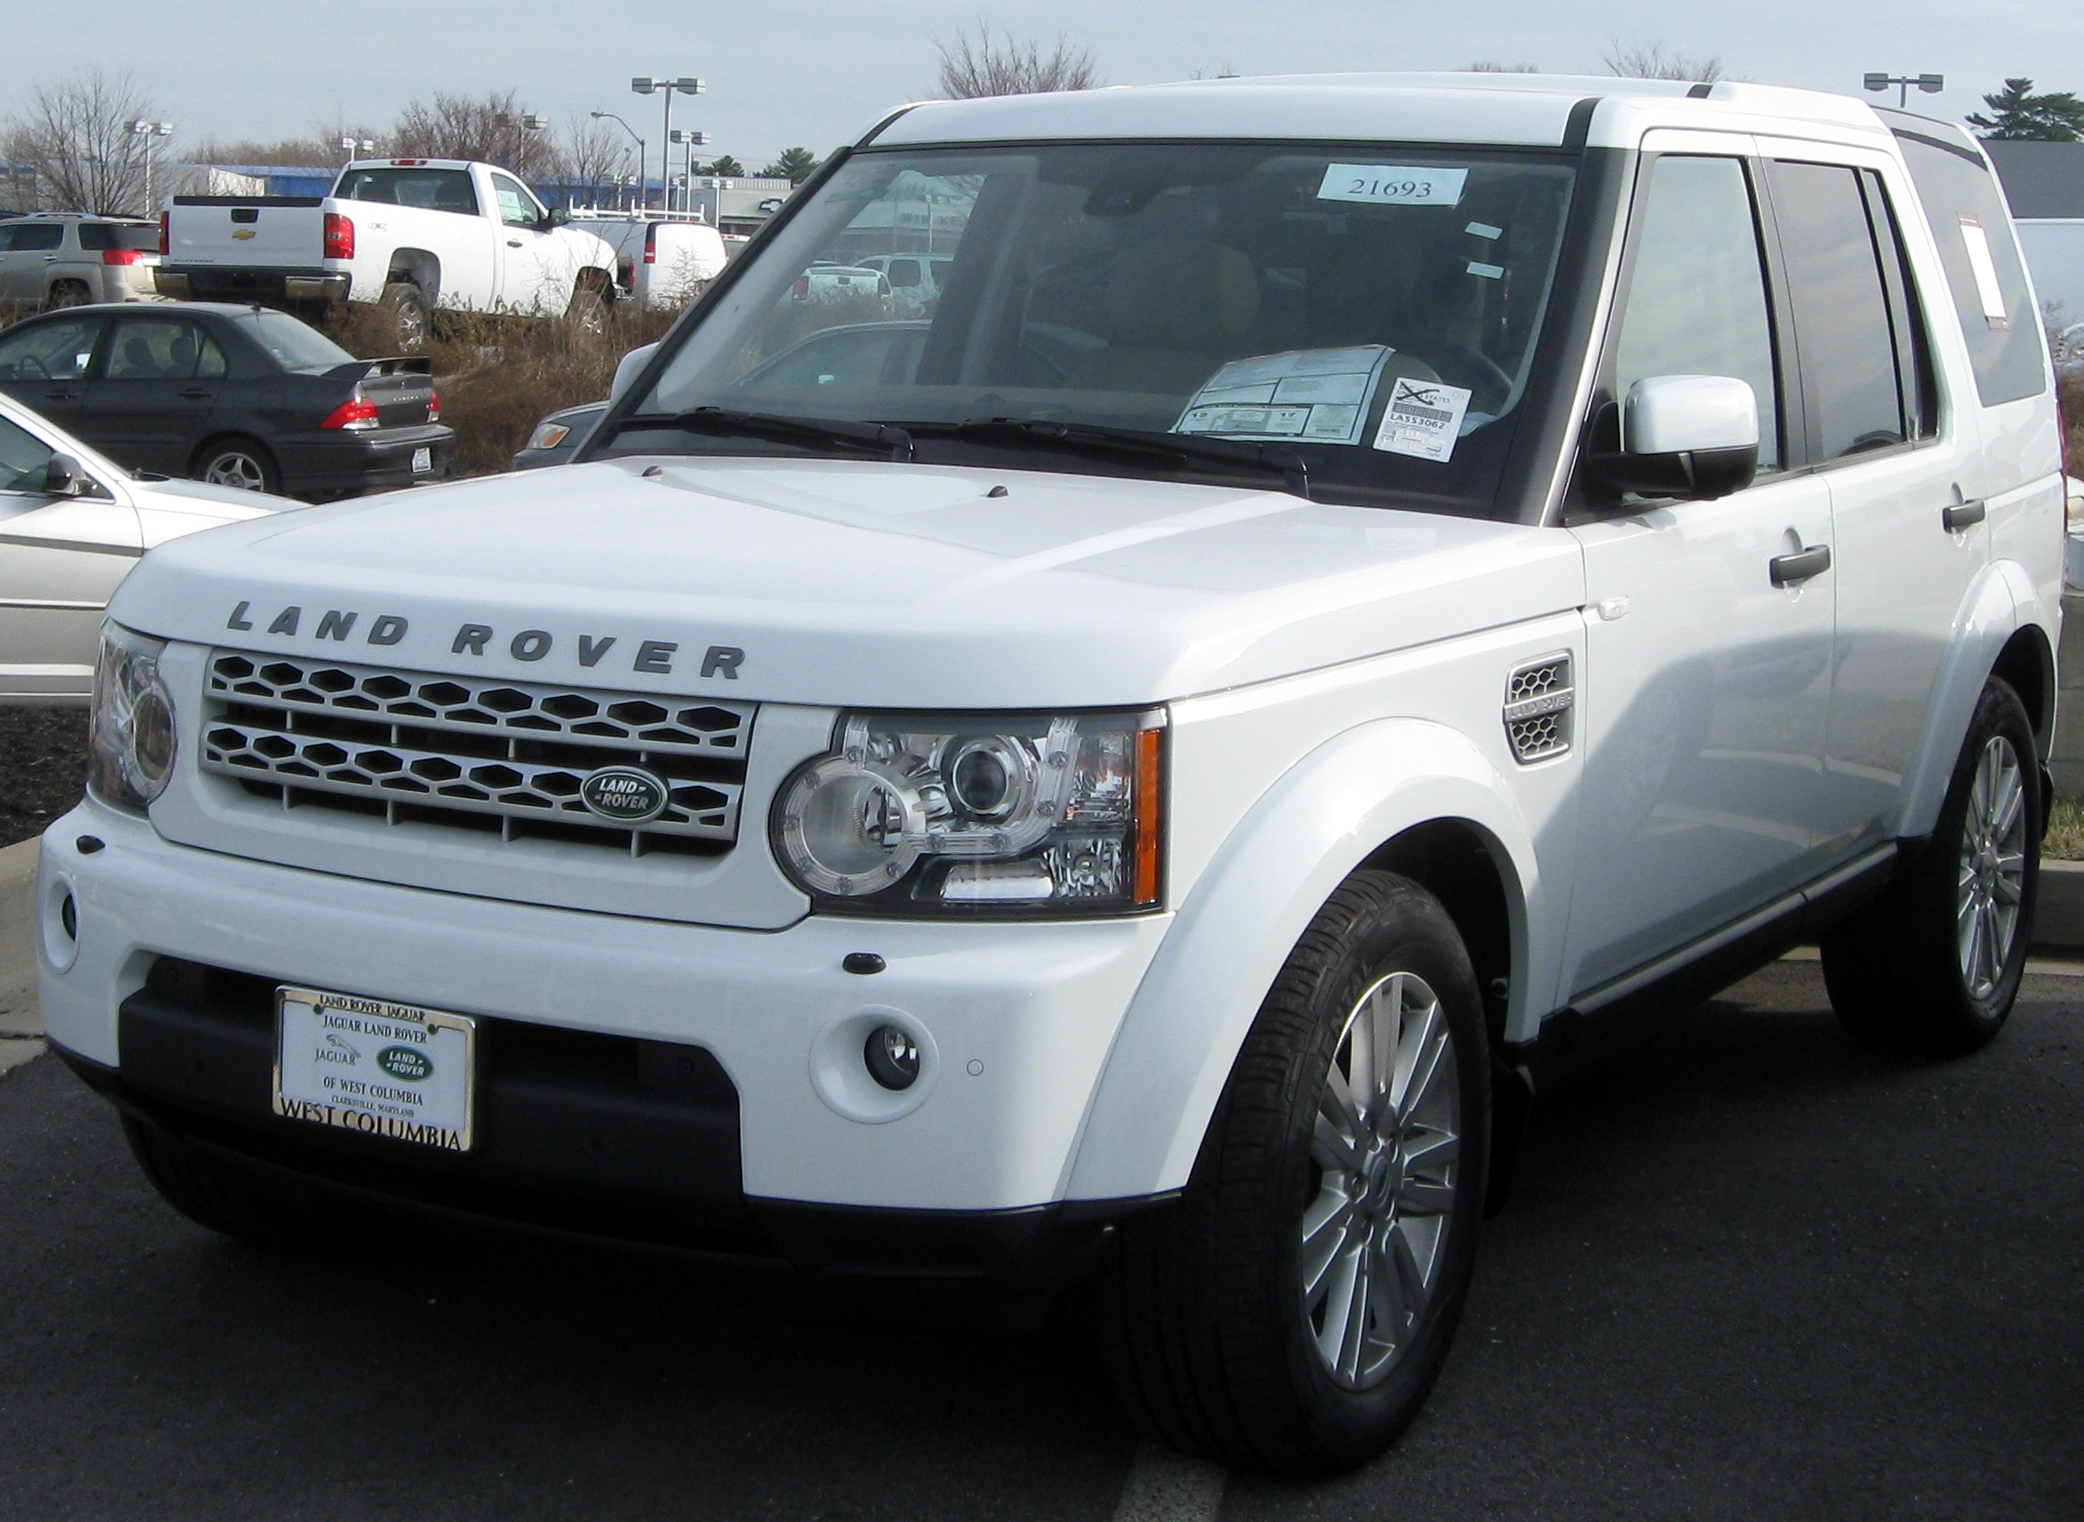 used landrover rover houston central land dealer new car